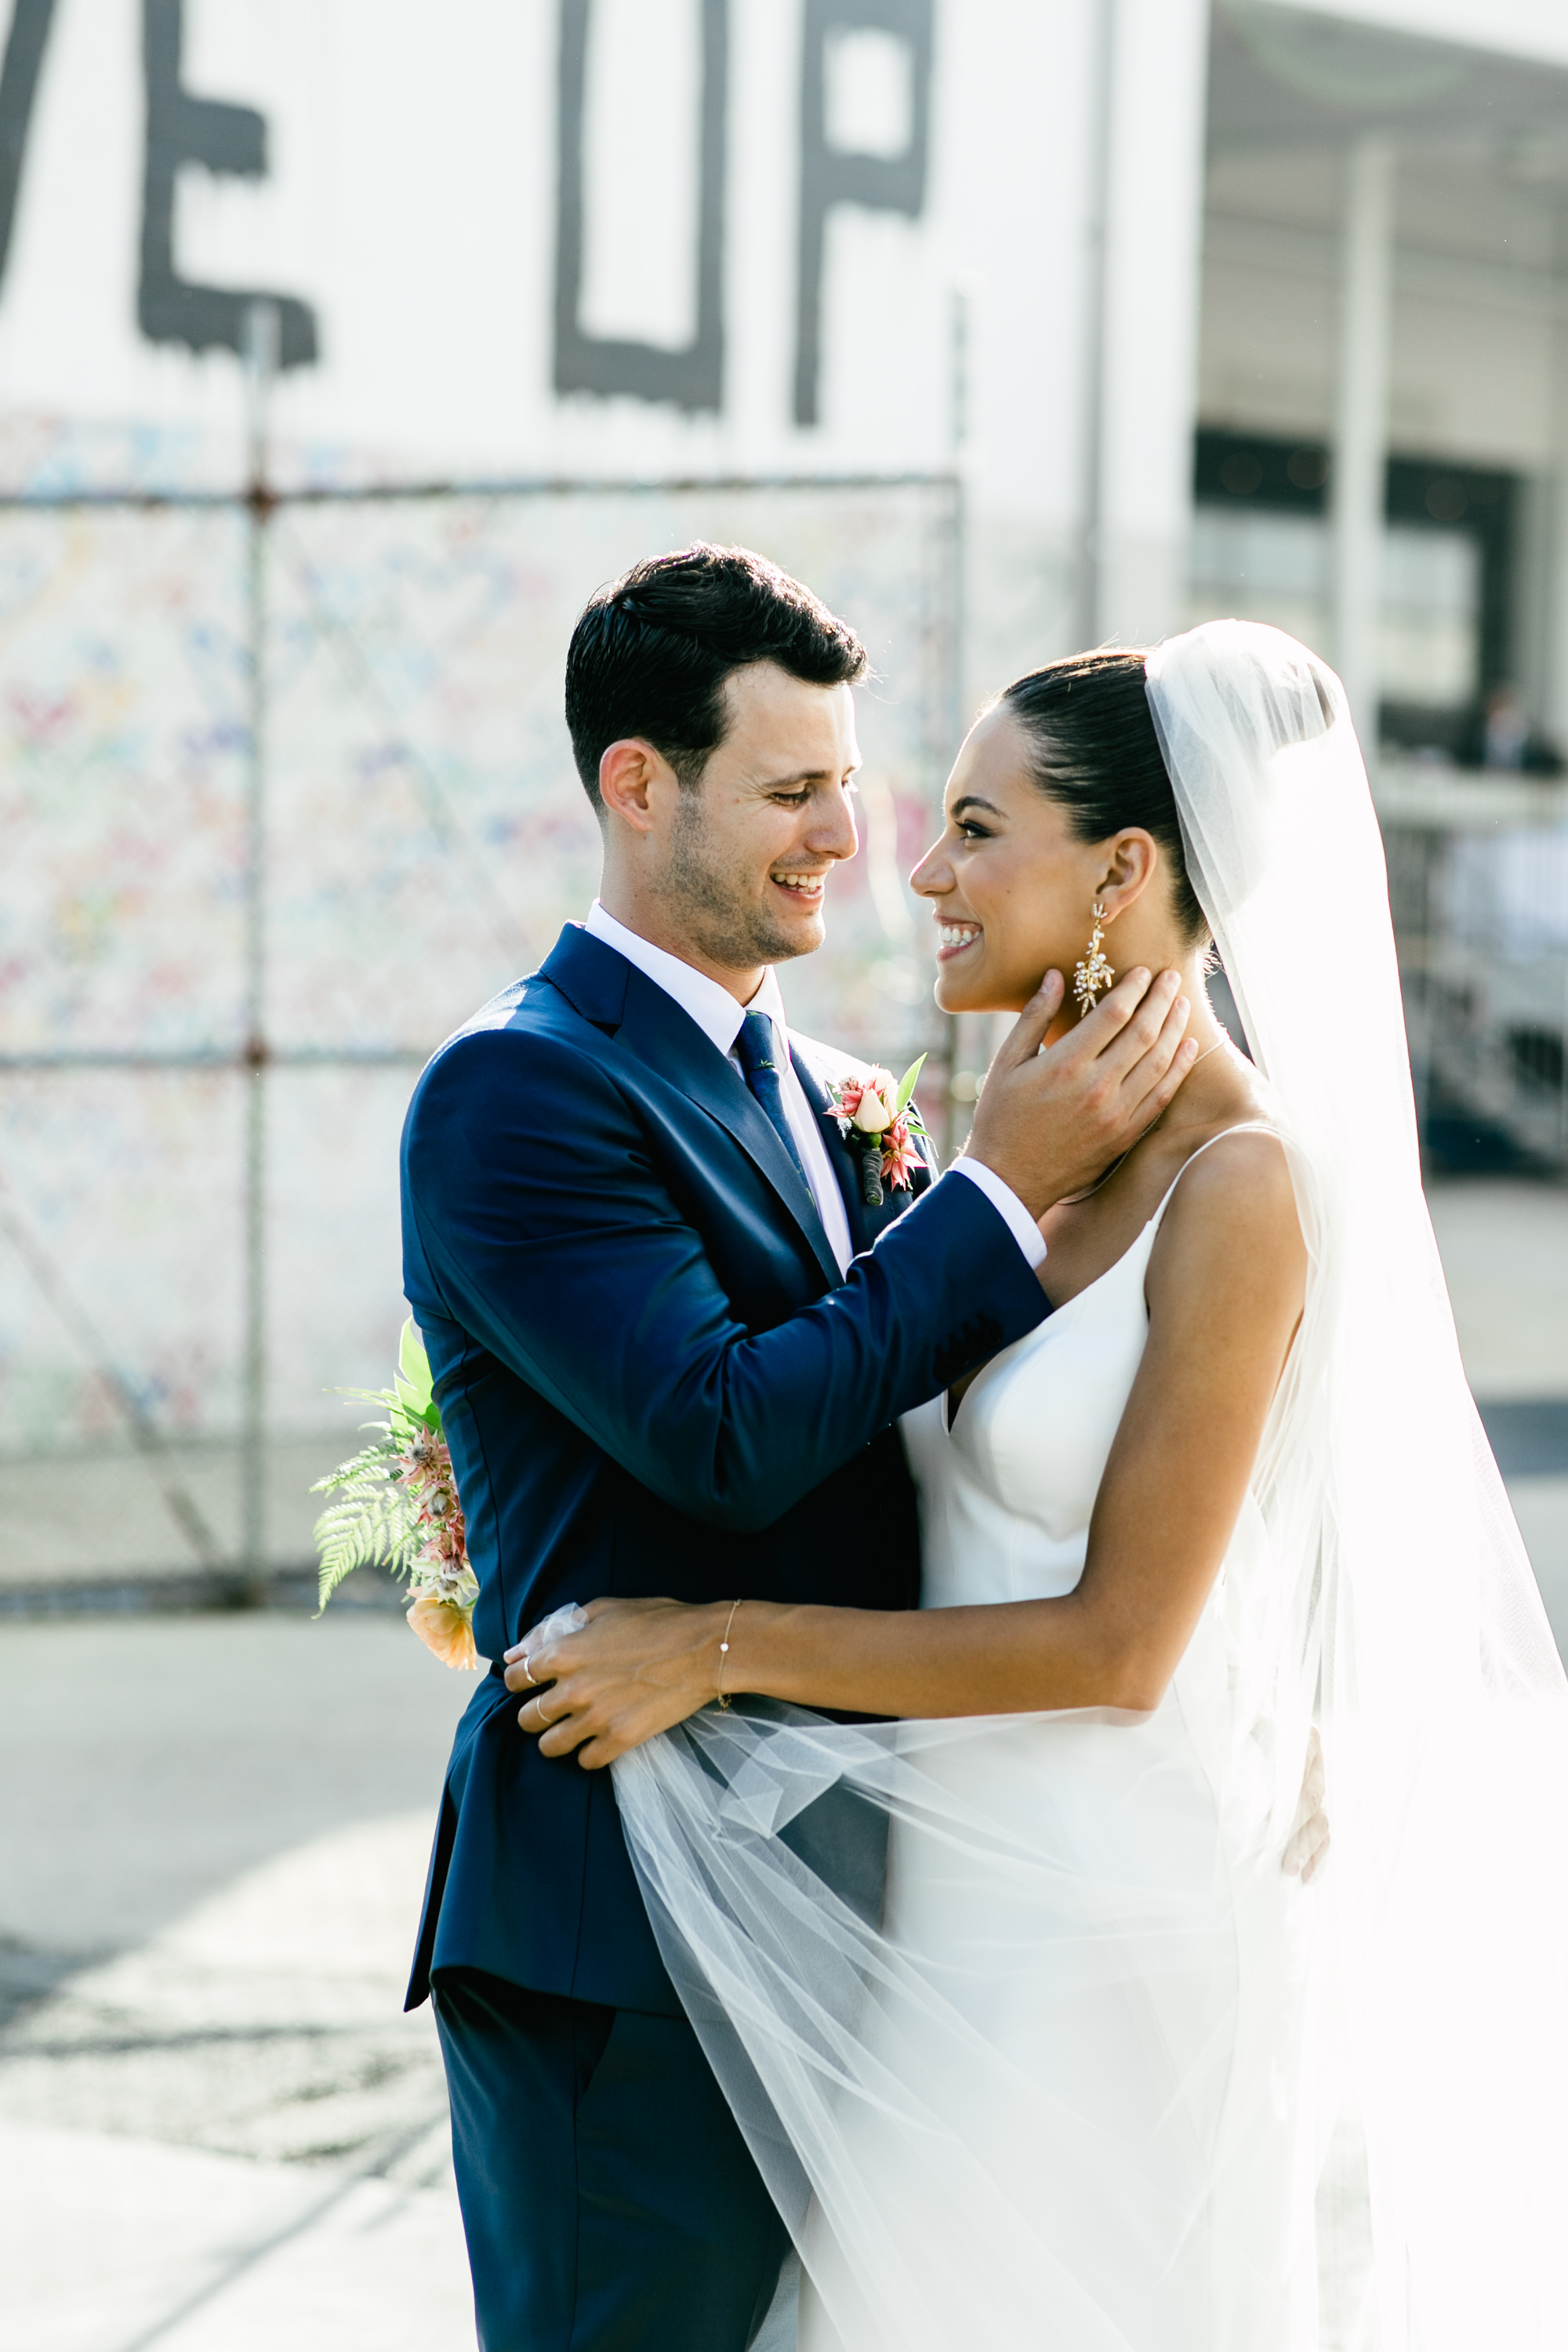 photography-wedding-weddings-natural-candid-dock 5 dc-washington dc-philadelphia-mixed race-editorial-modern-fine-art-008.JPG